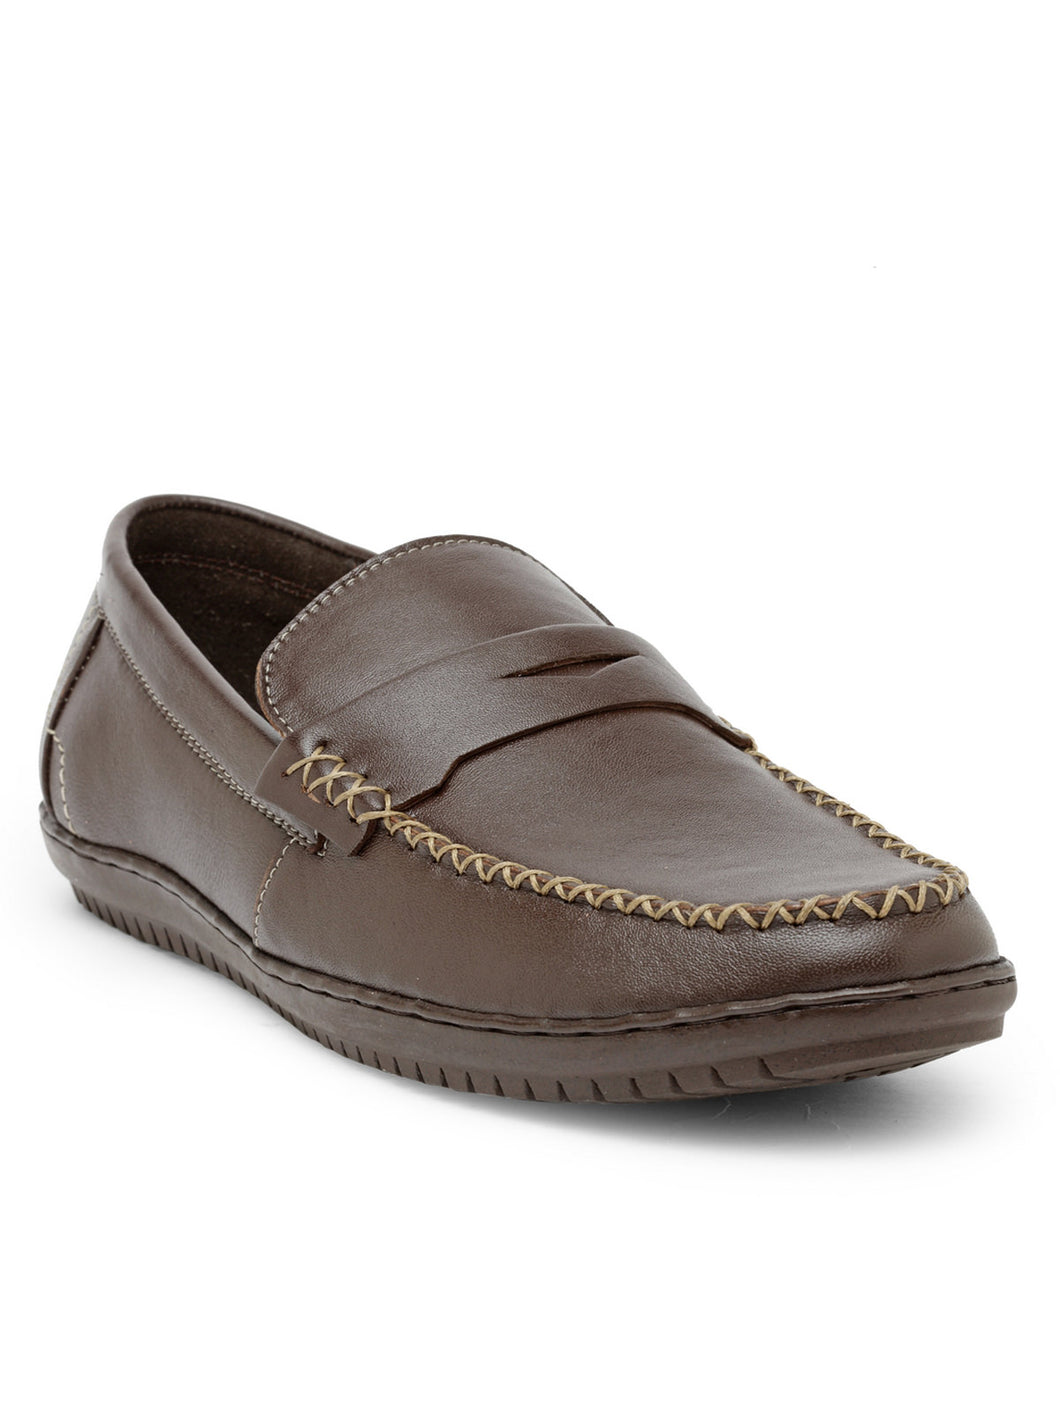 Teakwood Leather Brown Casual Shoes